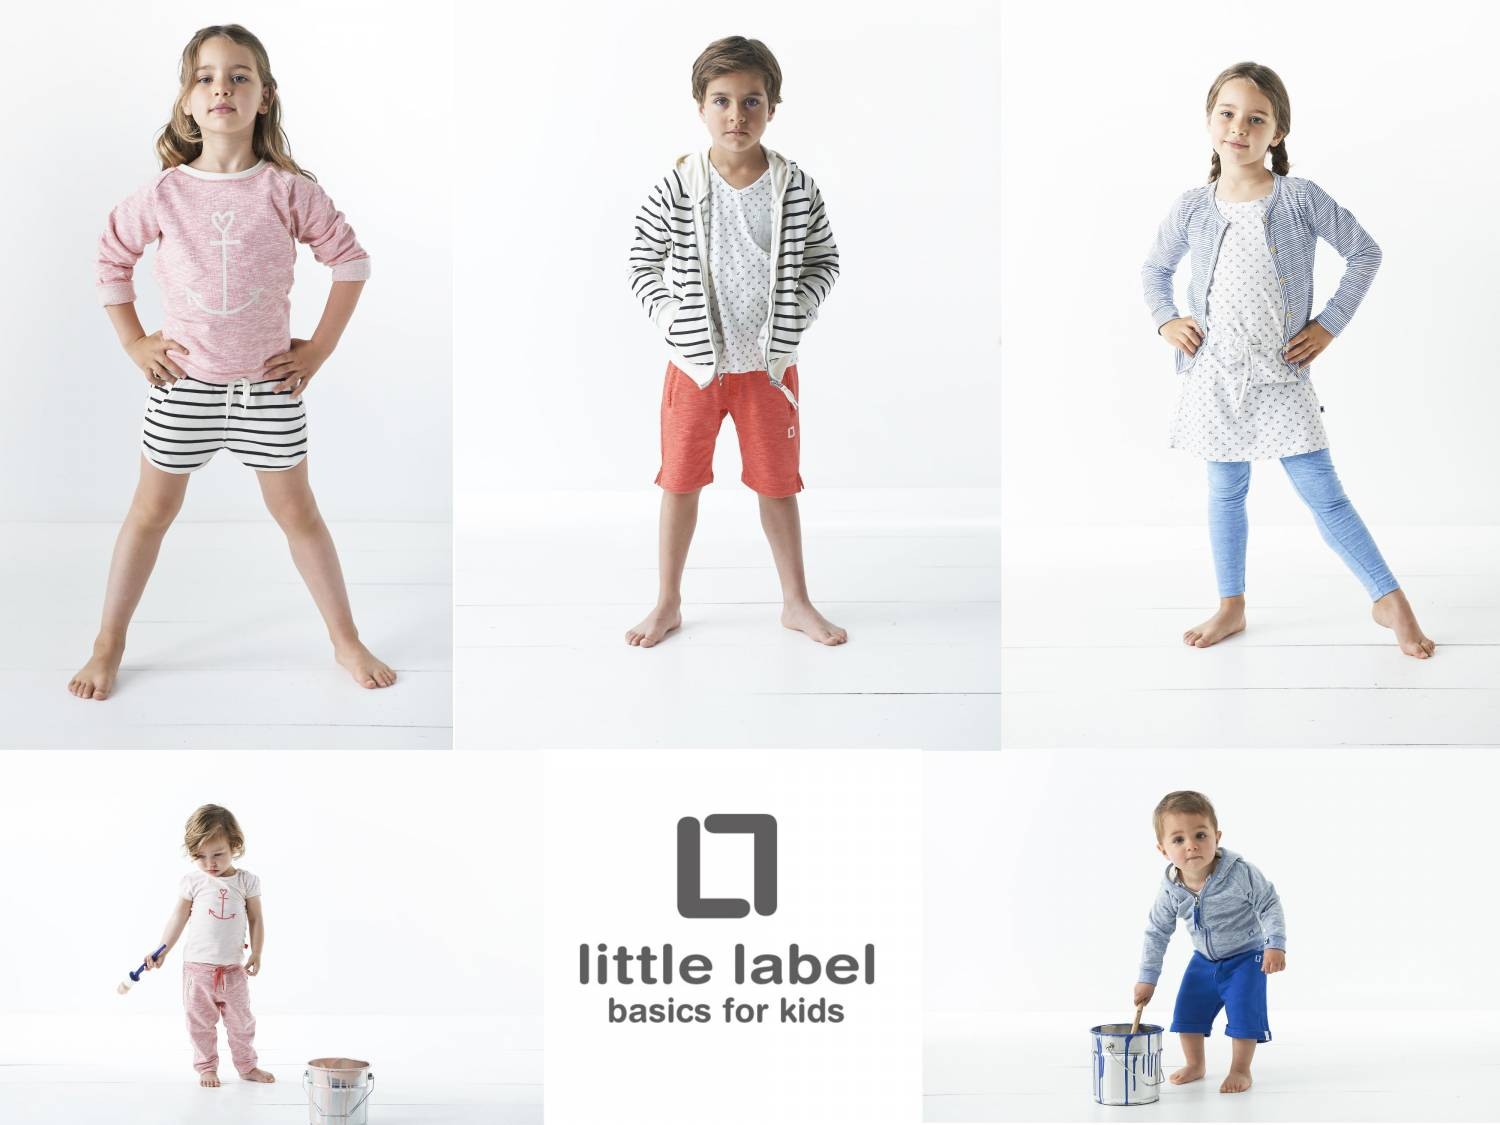 Nieuwe collectie Little label